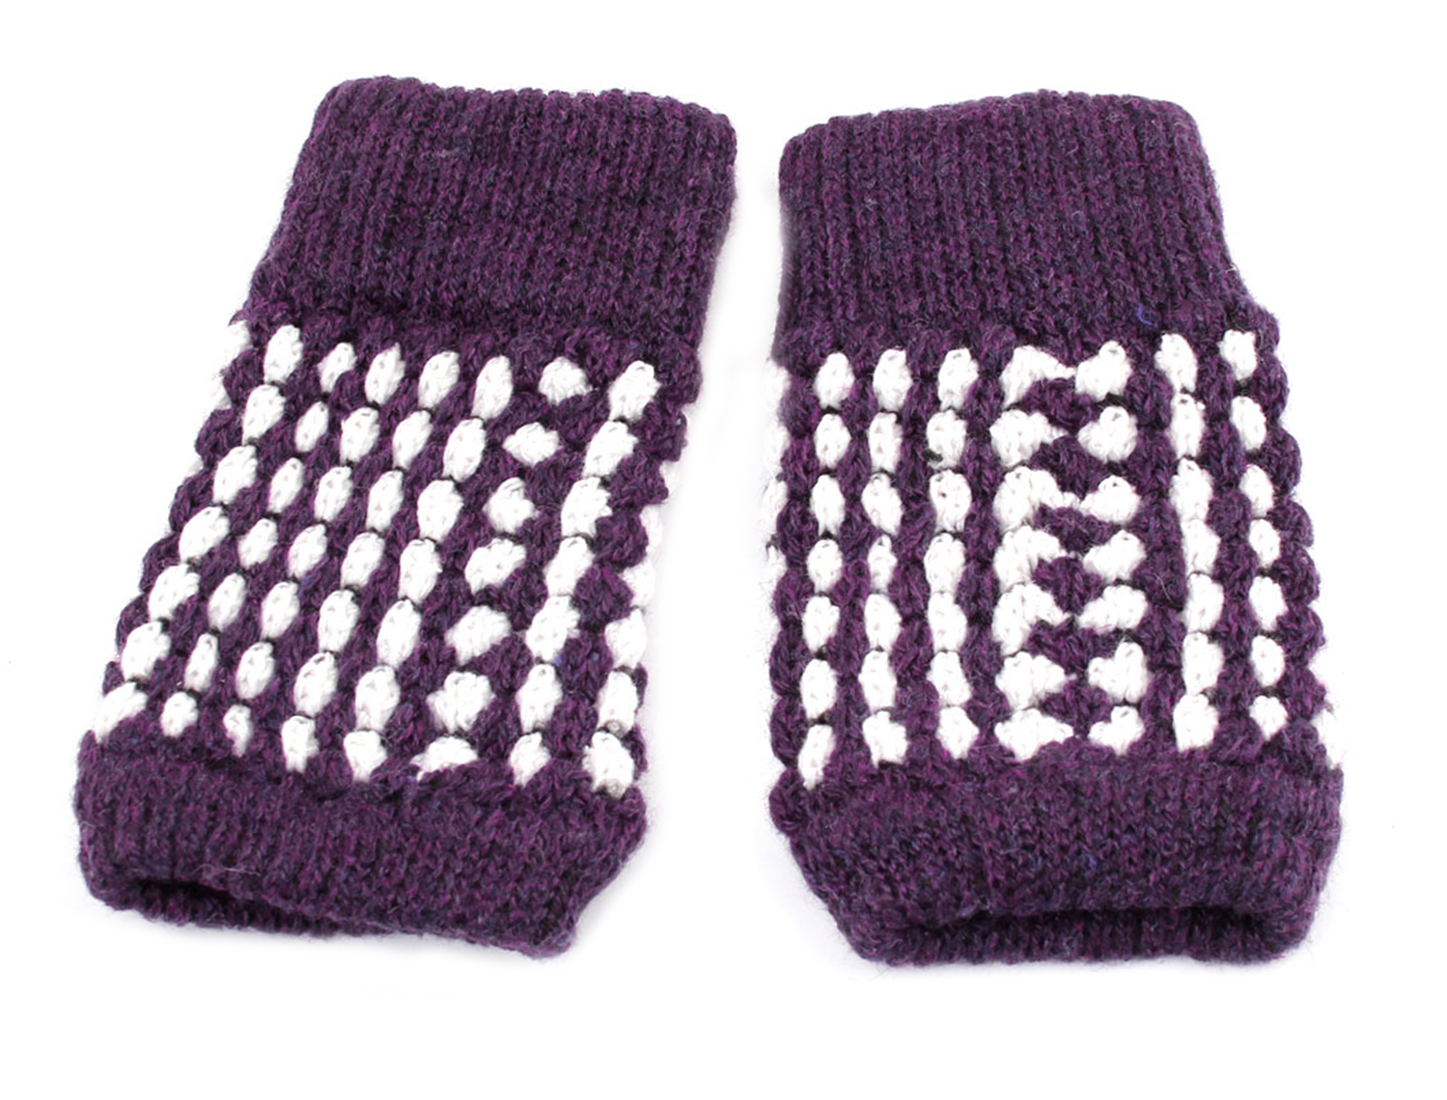 Pair Dark Purple White Knit Pattern Stretchy Fingerless Gloves for Lady